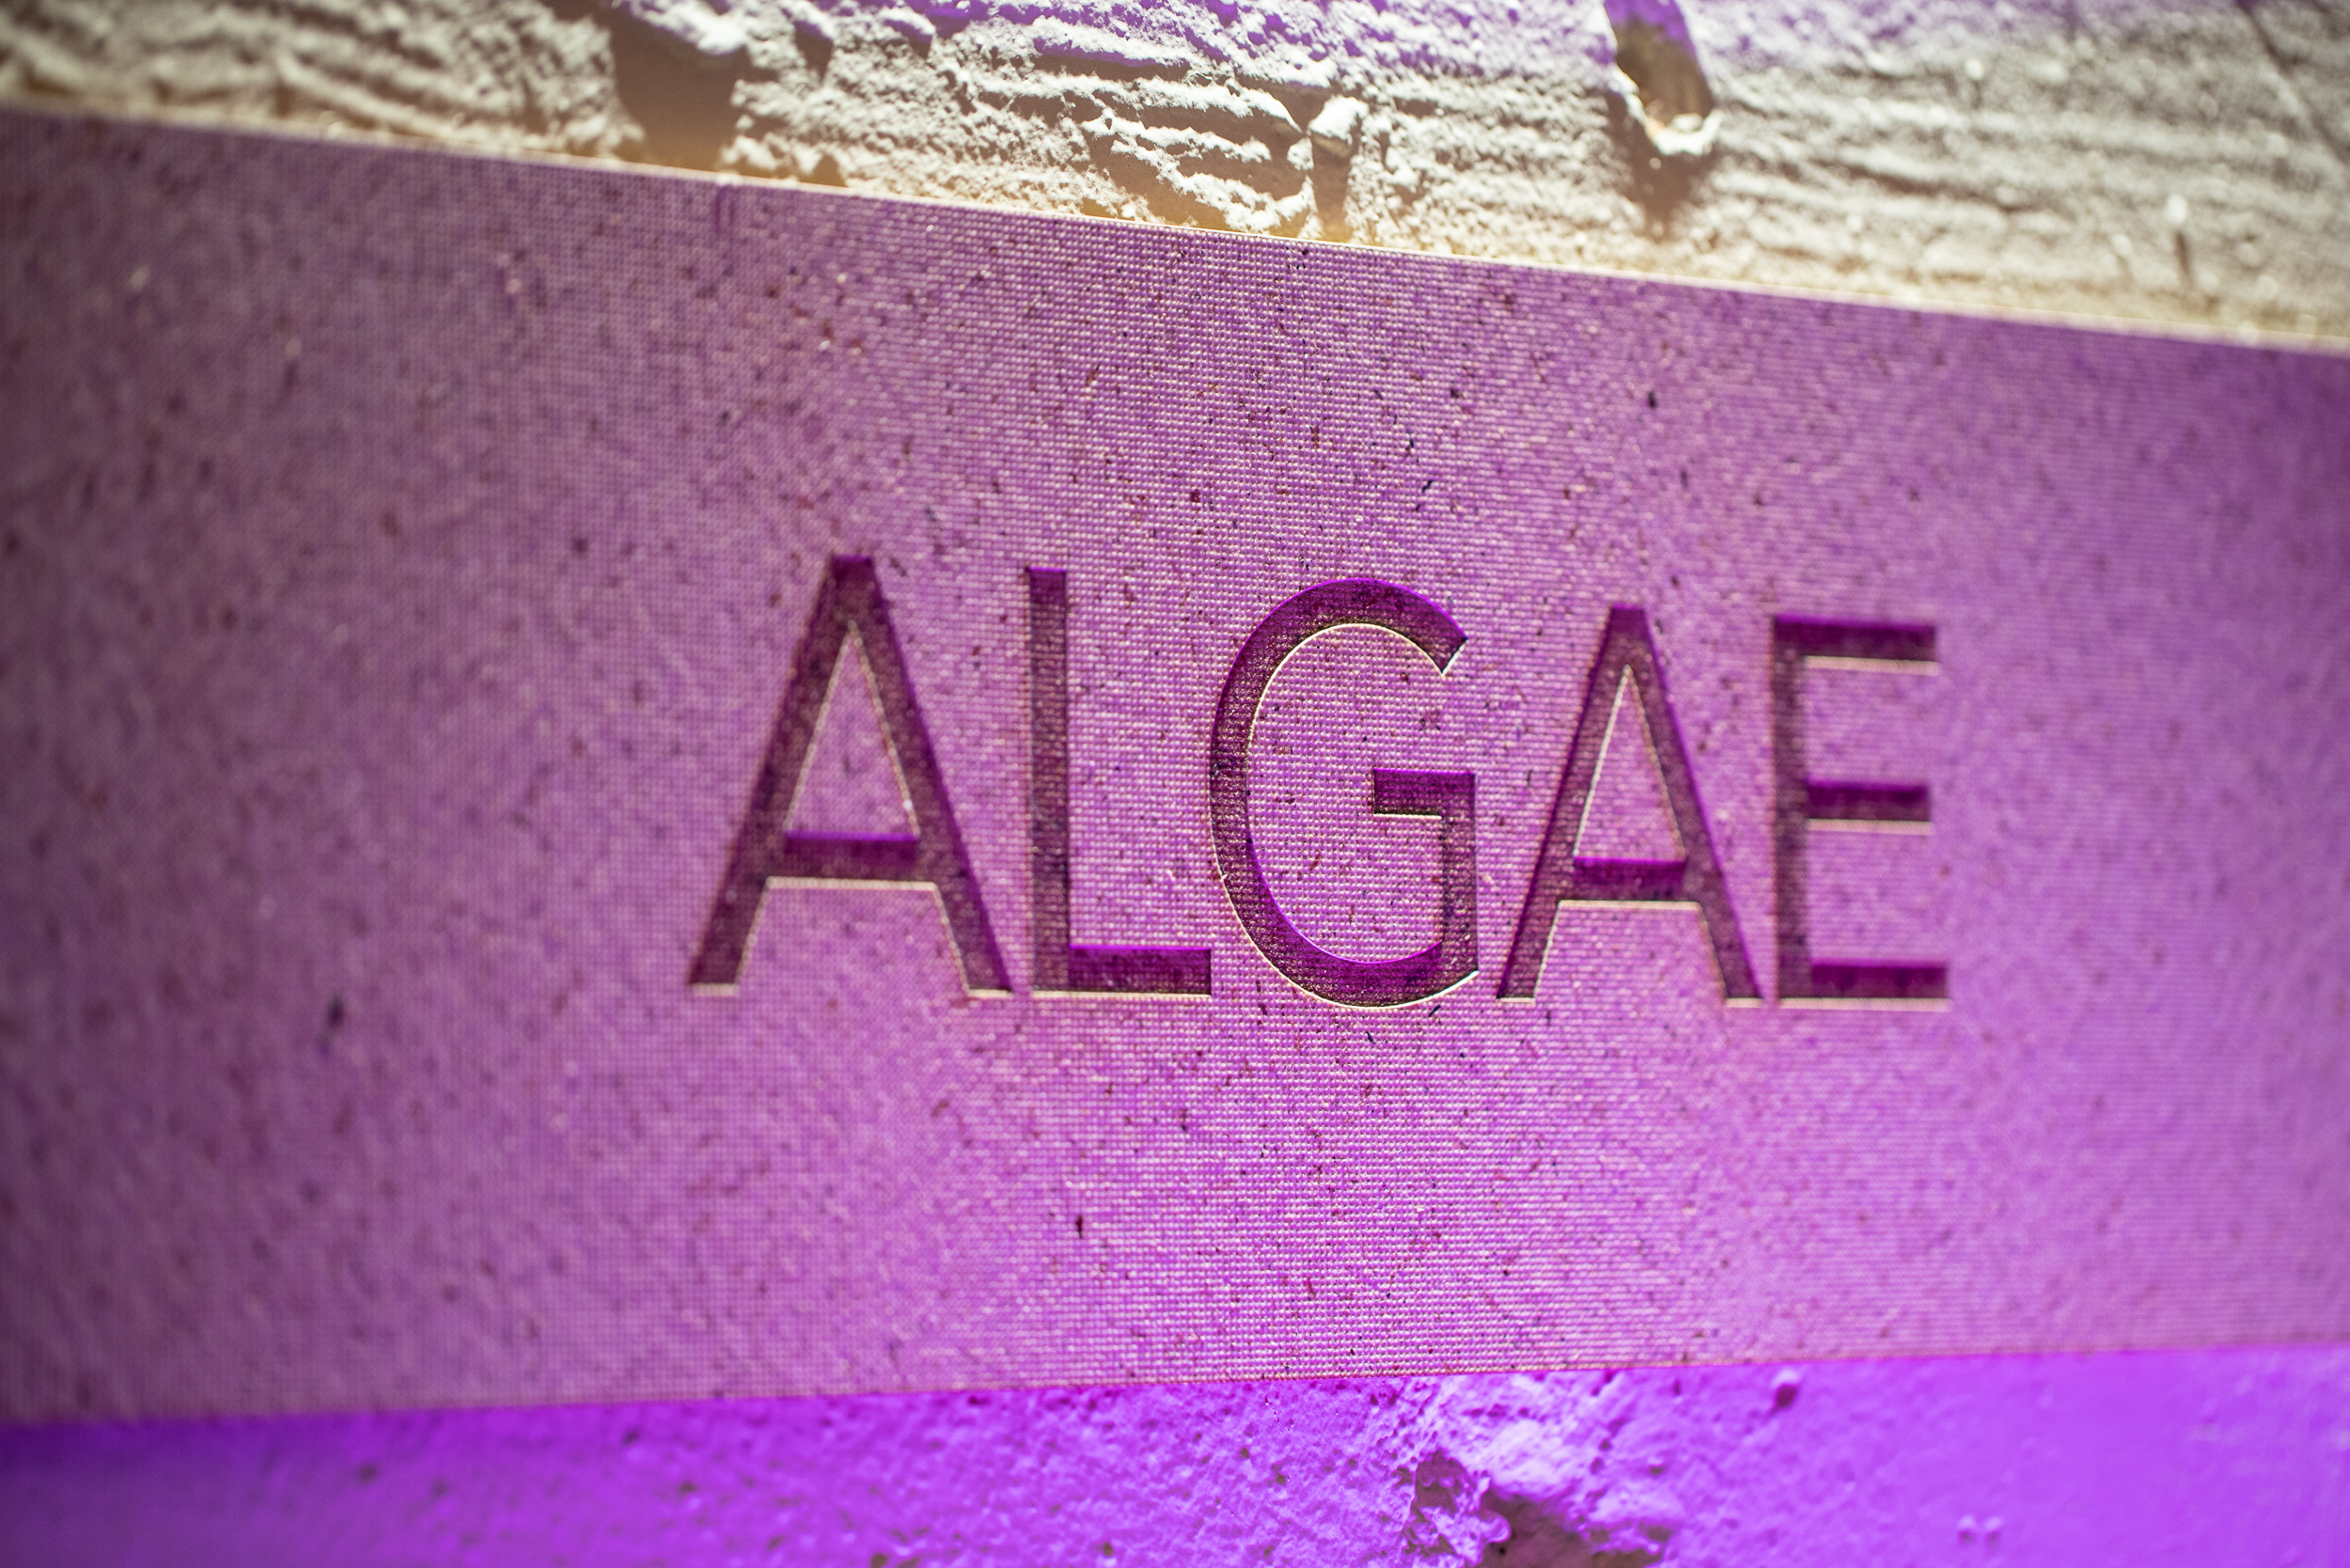 MaterialRevolution_KrisKish-45.jpg